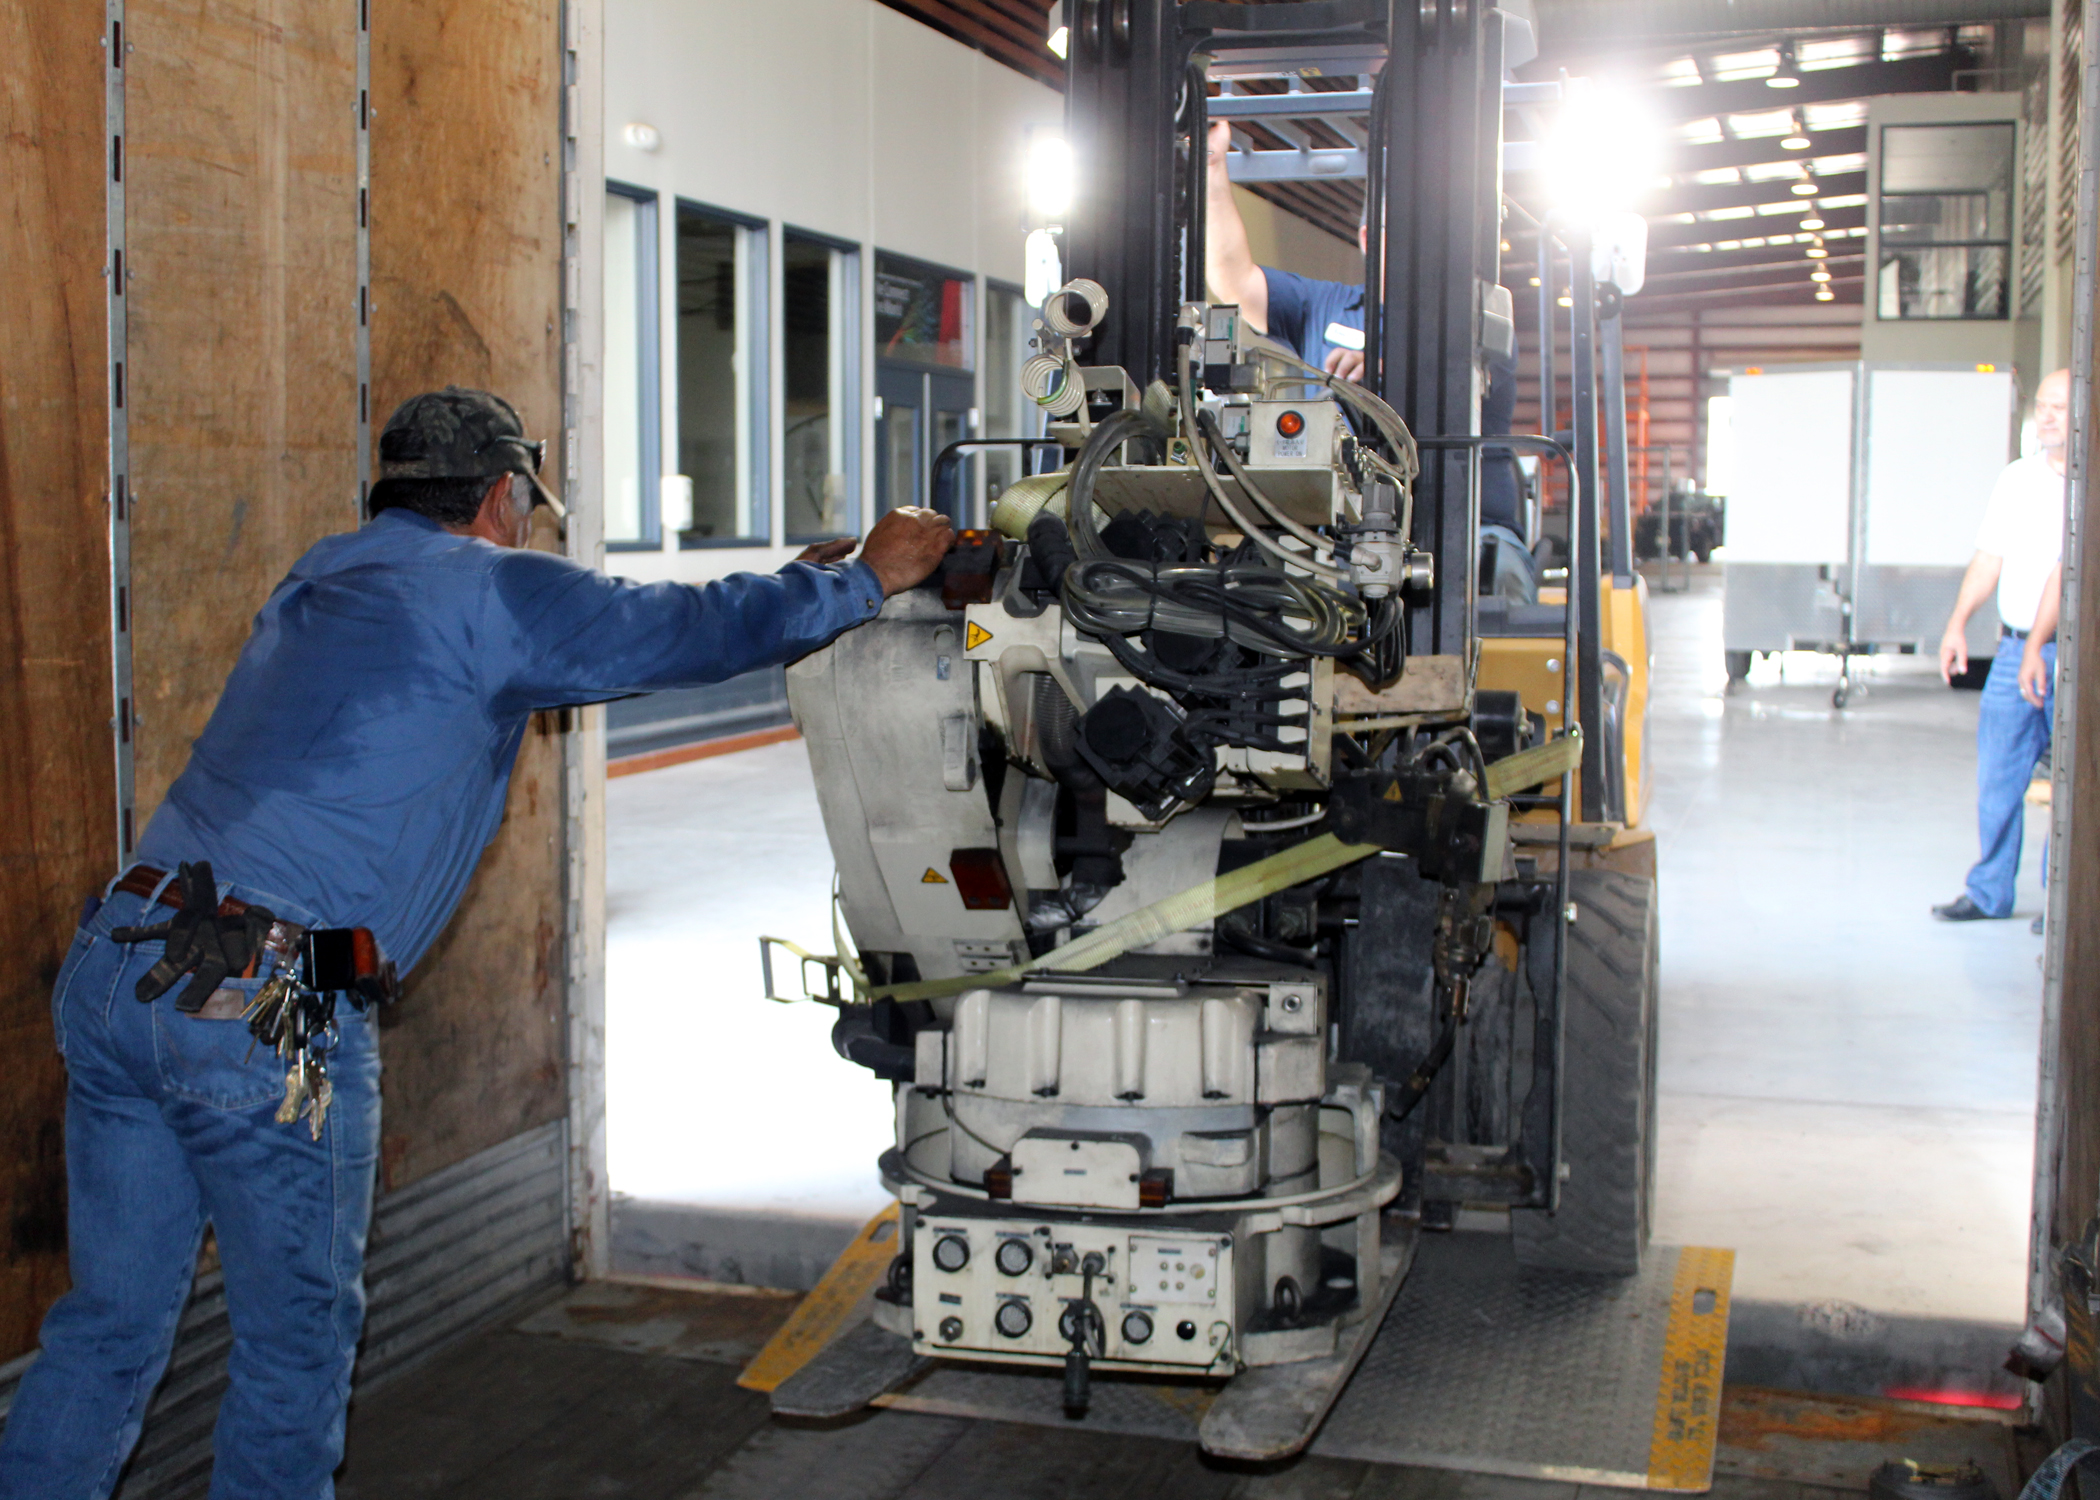 Texas State Technical College | News | TSTC received robotic arm